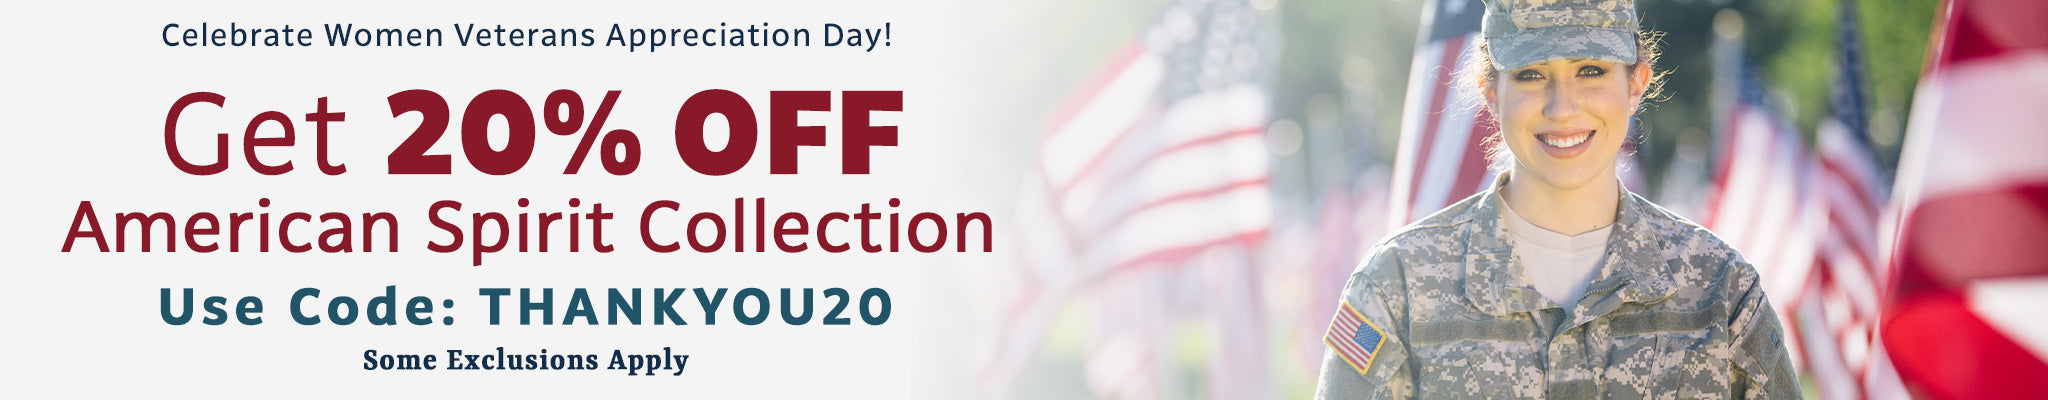 Get 20% OFF the American Spirit Collection   Use Code: THANKYOU20   Some Exclusions Apply